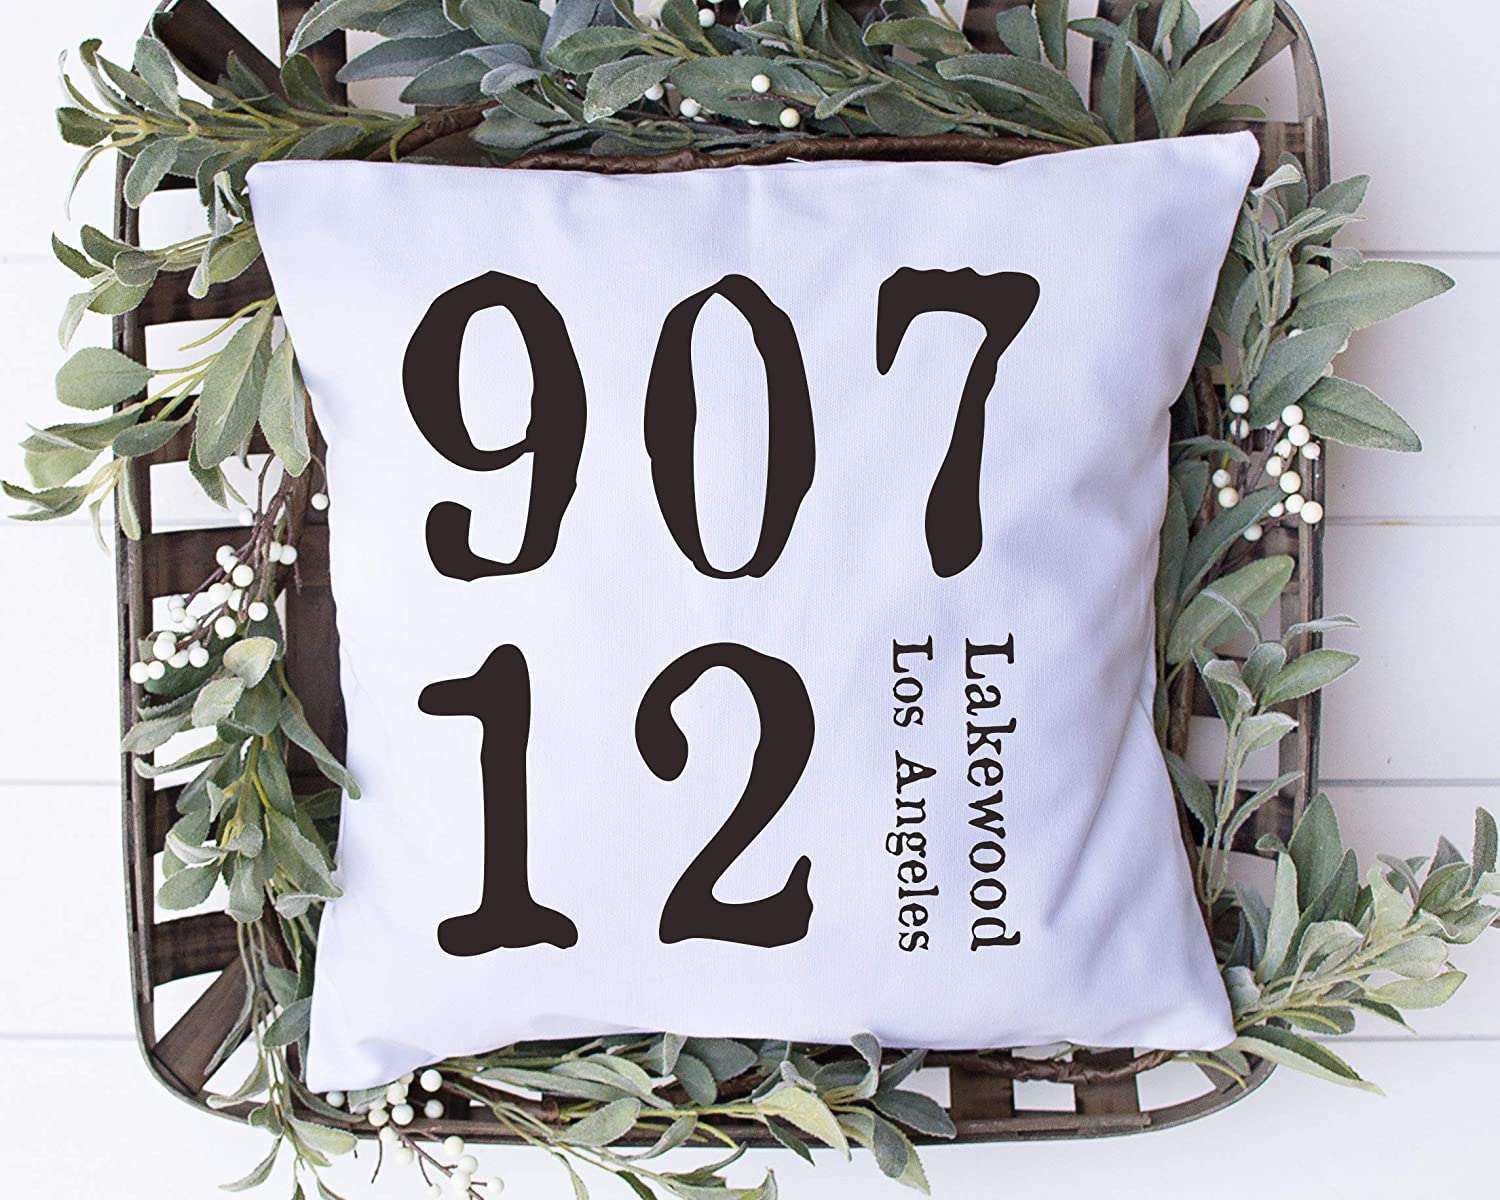 Flowershave357 Personalized Zip Code Pillow Address PillowHouse Warming Gift for New Home Wedding GiftHome Decor Monogrammed Gift Custom Throw Pillow